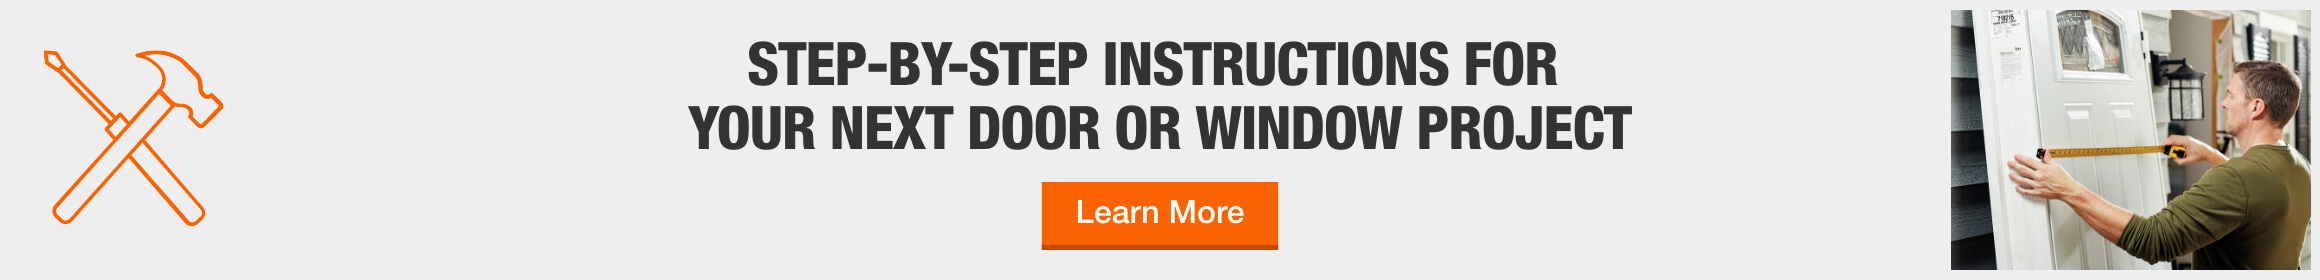 Step-by-step instructions for your next door or window project